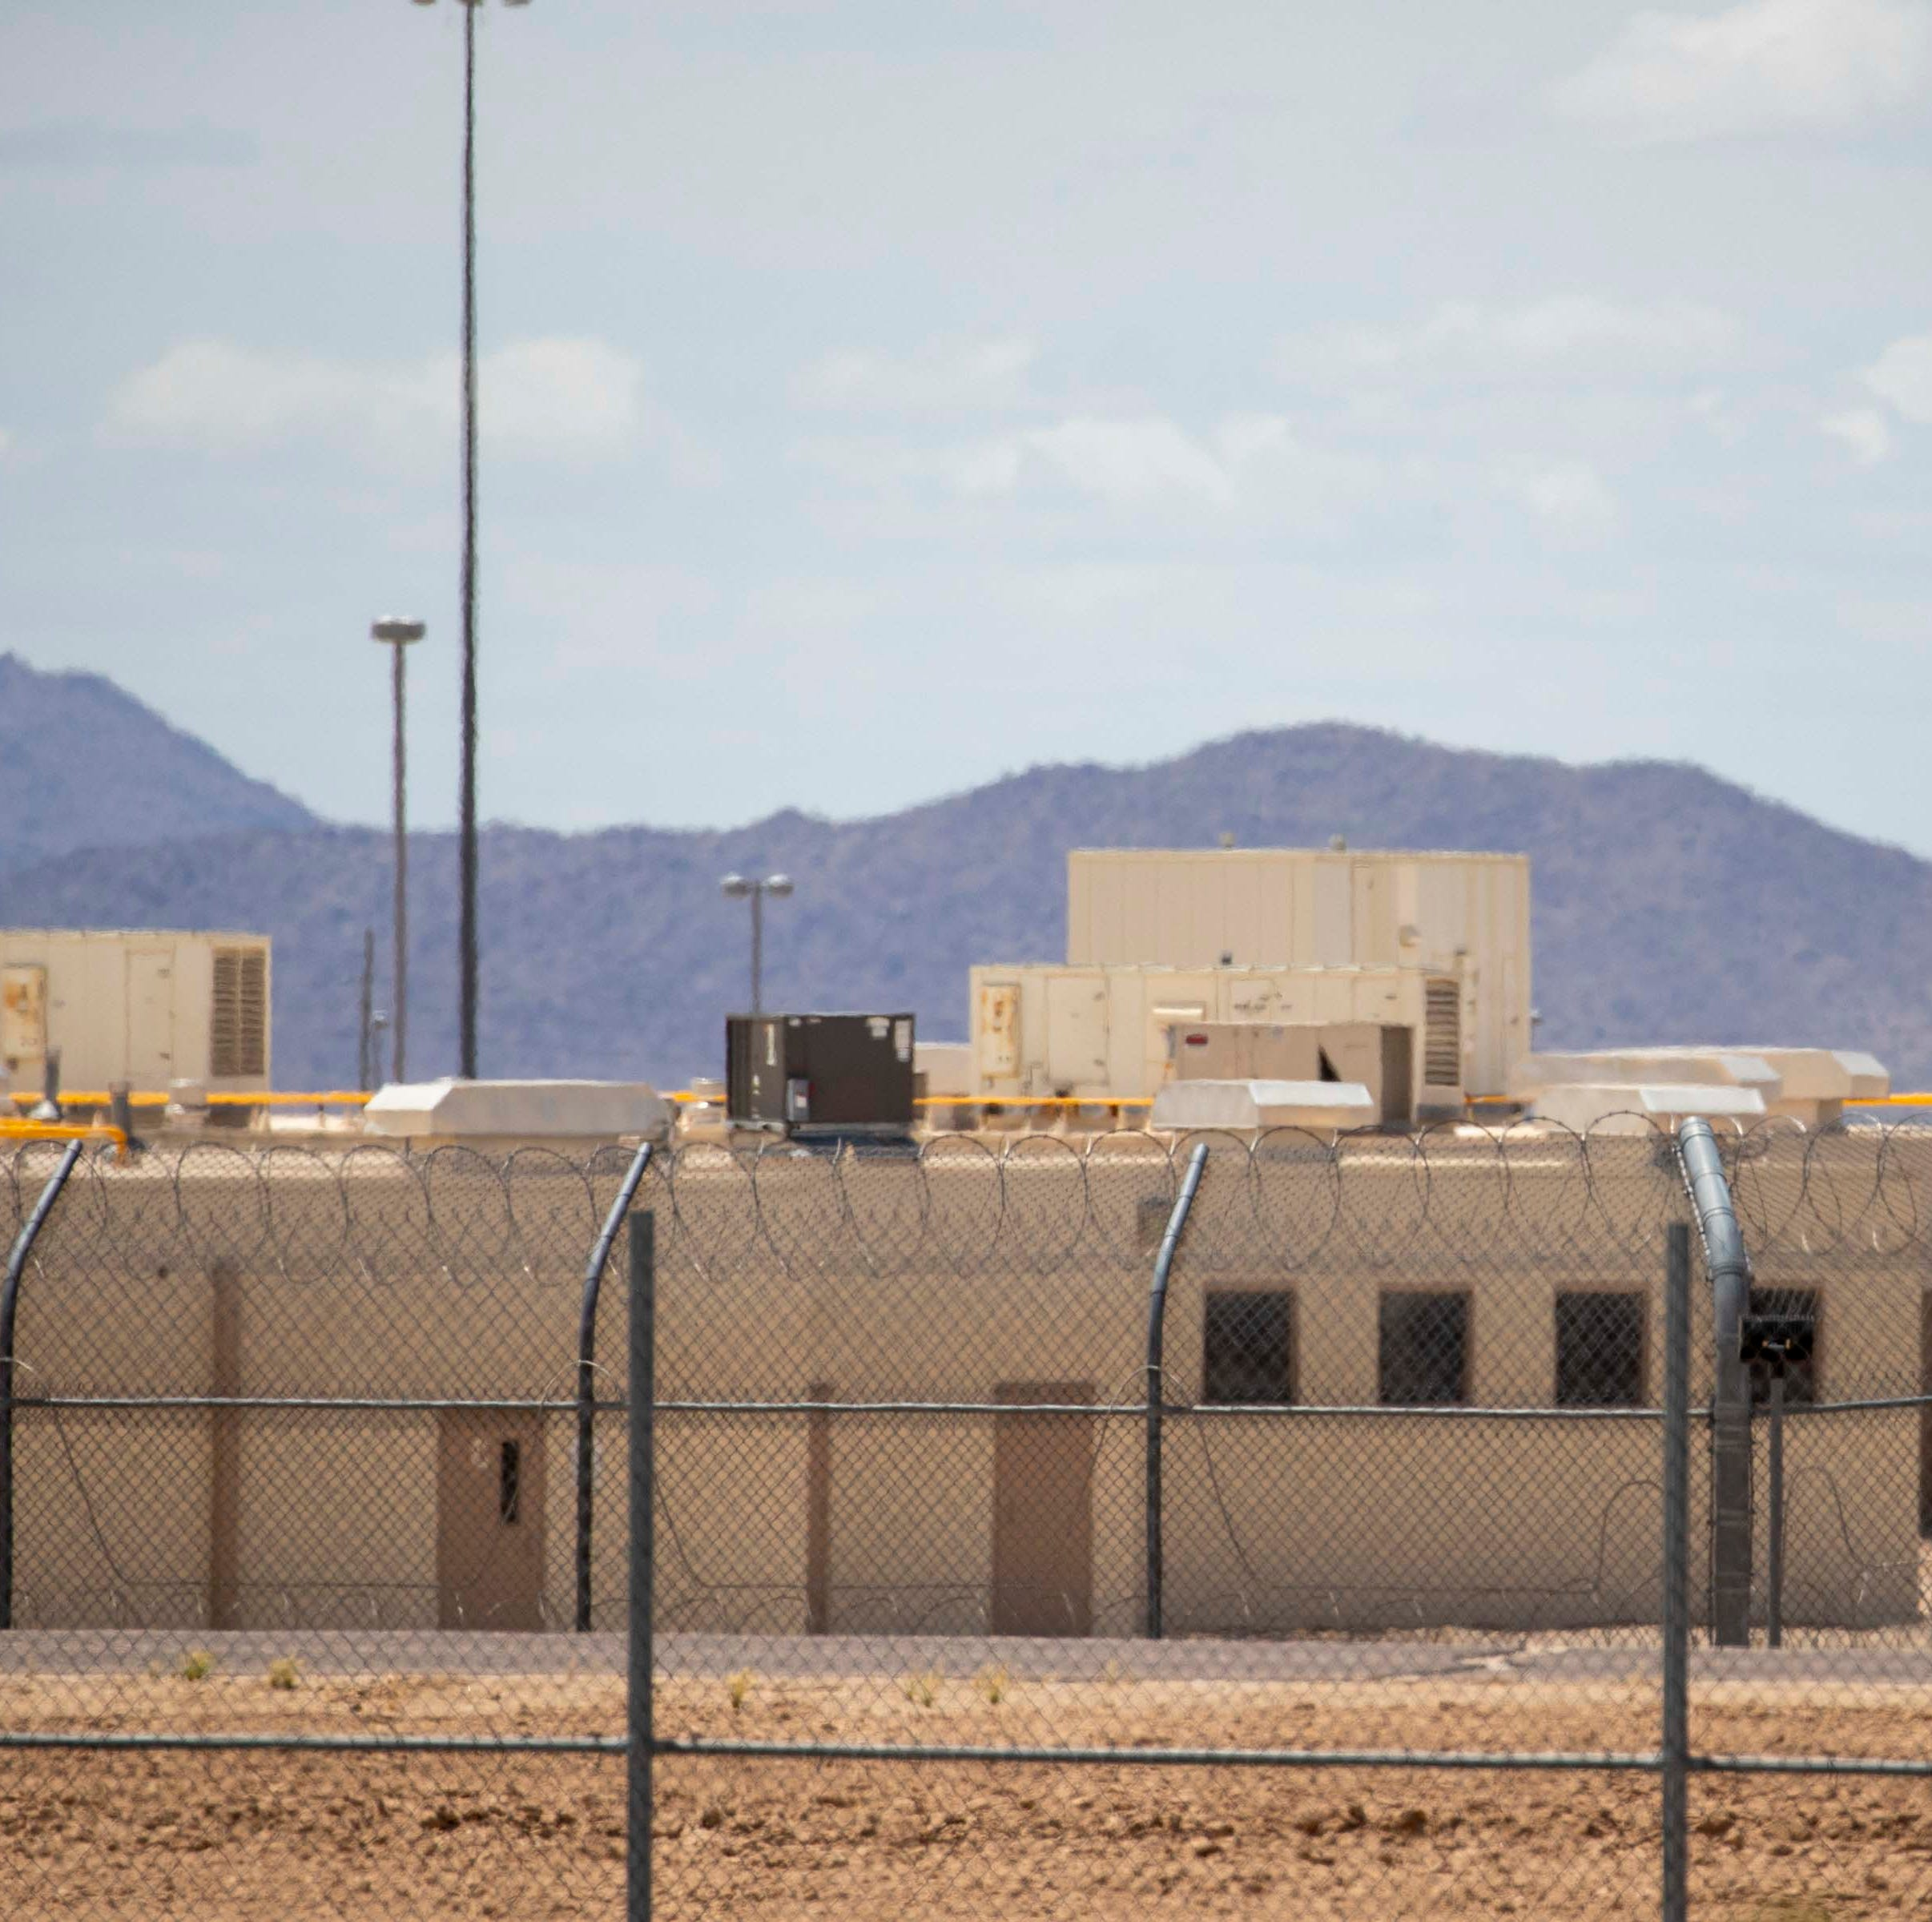 Prisons whistleblower warns Gov. Ducey of cover-up on investigation into broken cell locks